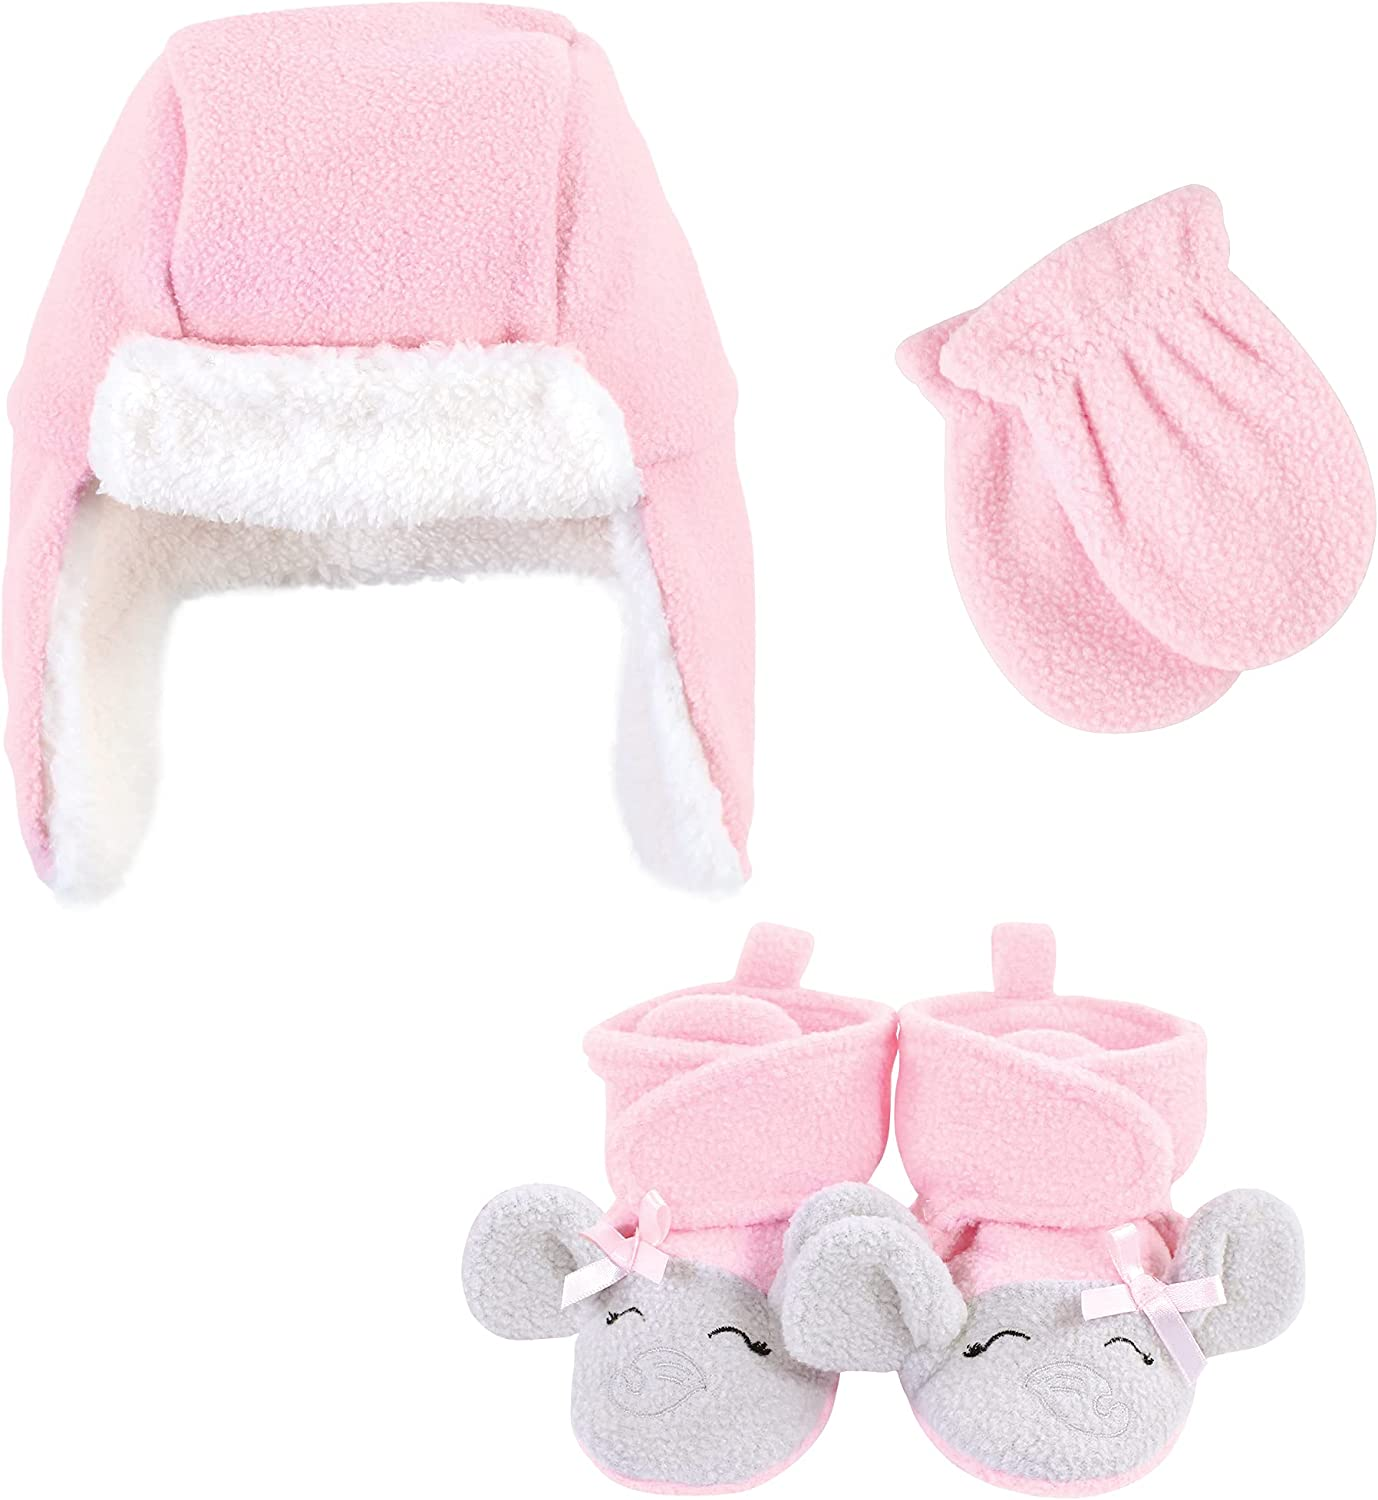 Hudson Baby Unisex Baby Trapper Hat, Mitten and Bootie Set, Pink Gray Elephant, 6-12 Months